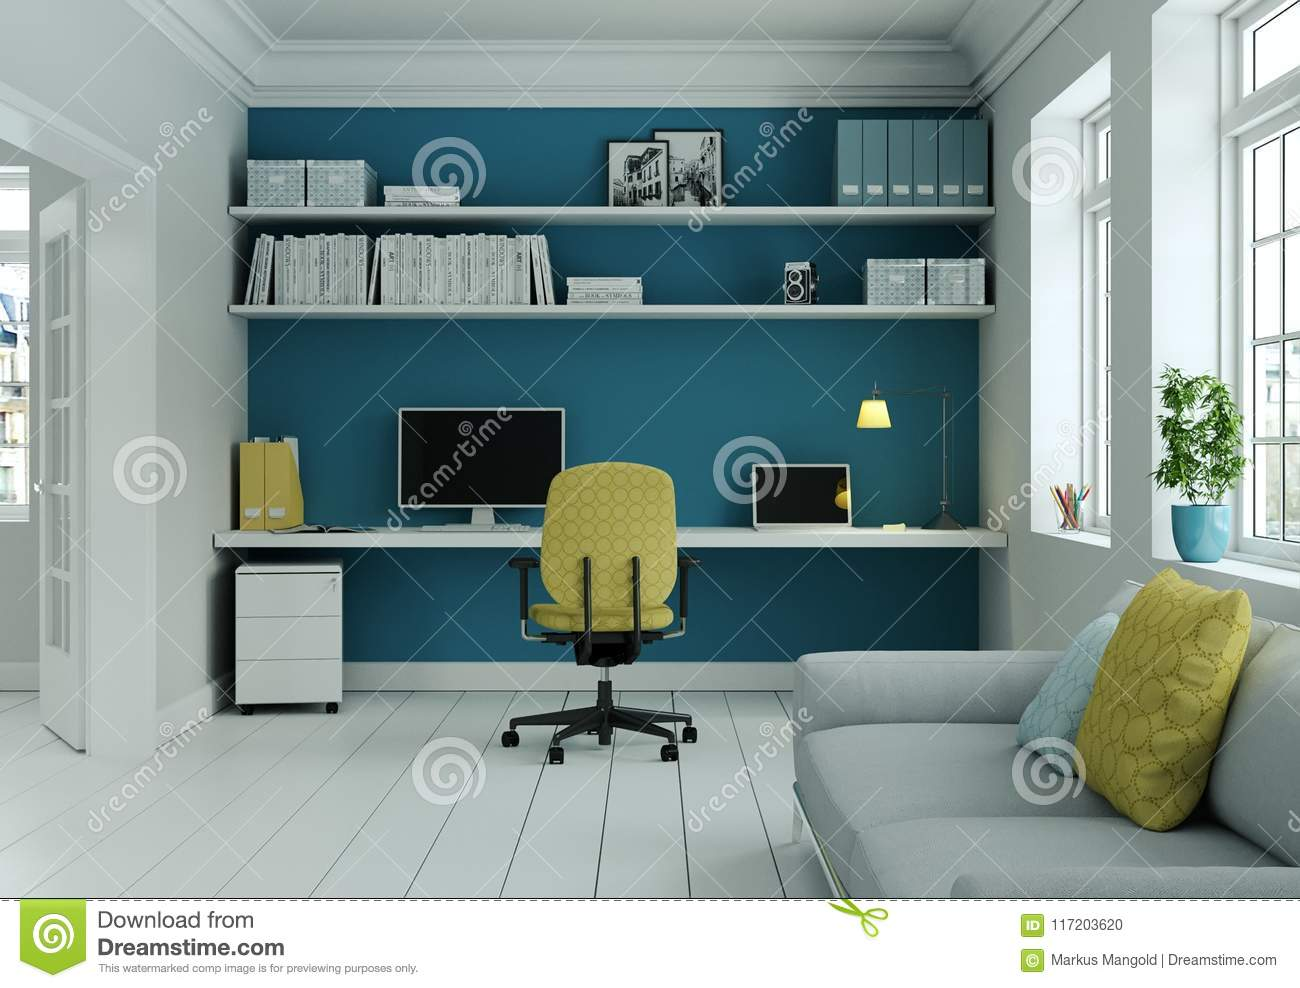 Blue home office wall Dark Modern Home Office With Yellow Chair And Blue Wall Interior Design 3d Rendering Dreamstimecom Modern Home Office With Yellow Chair And Blue Wall Interior Design